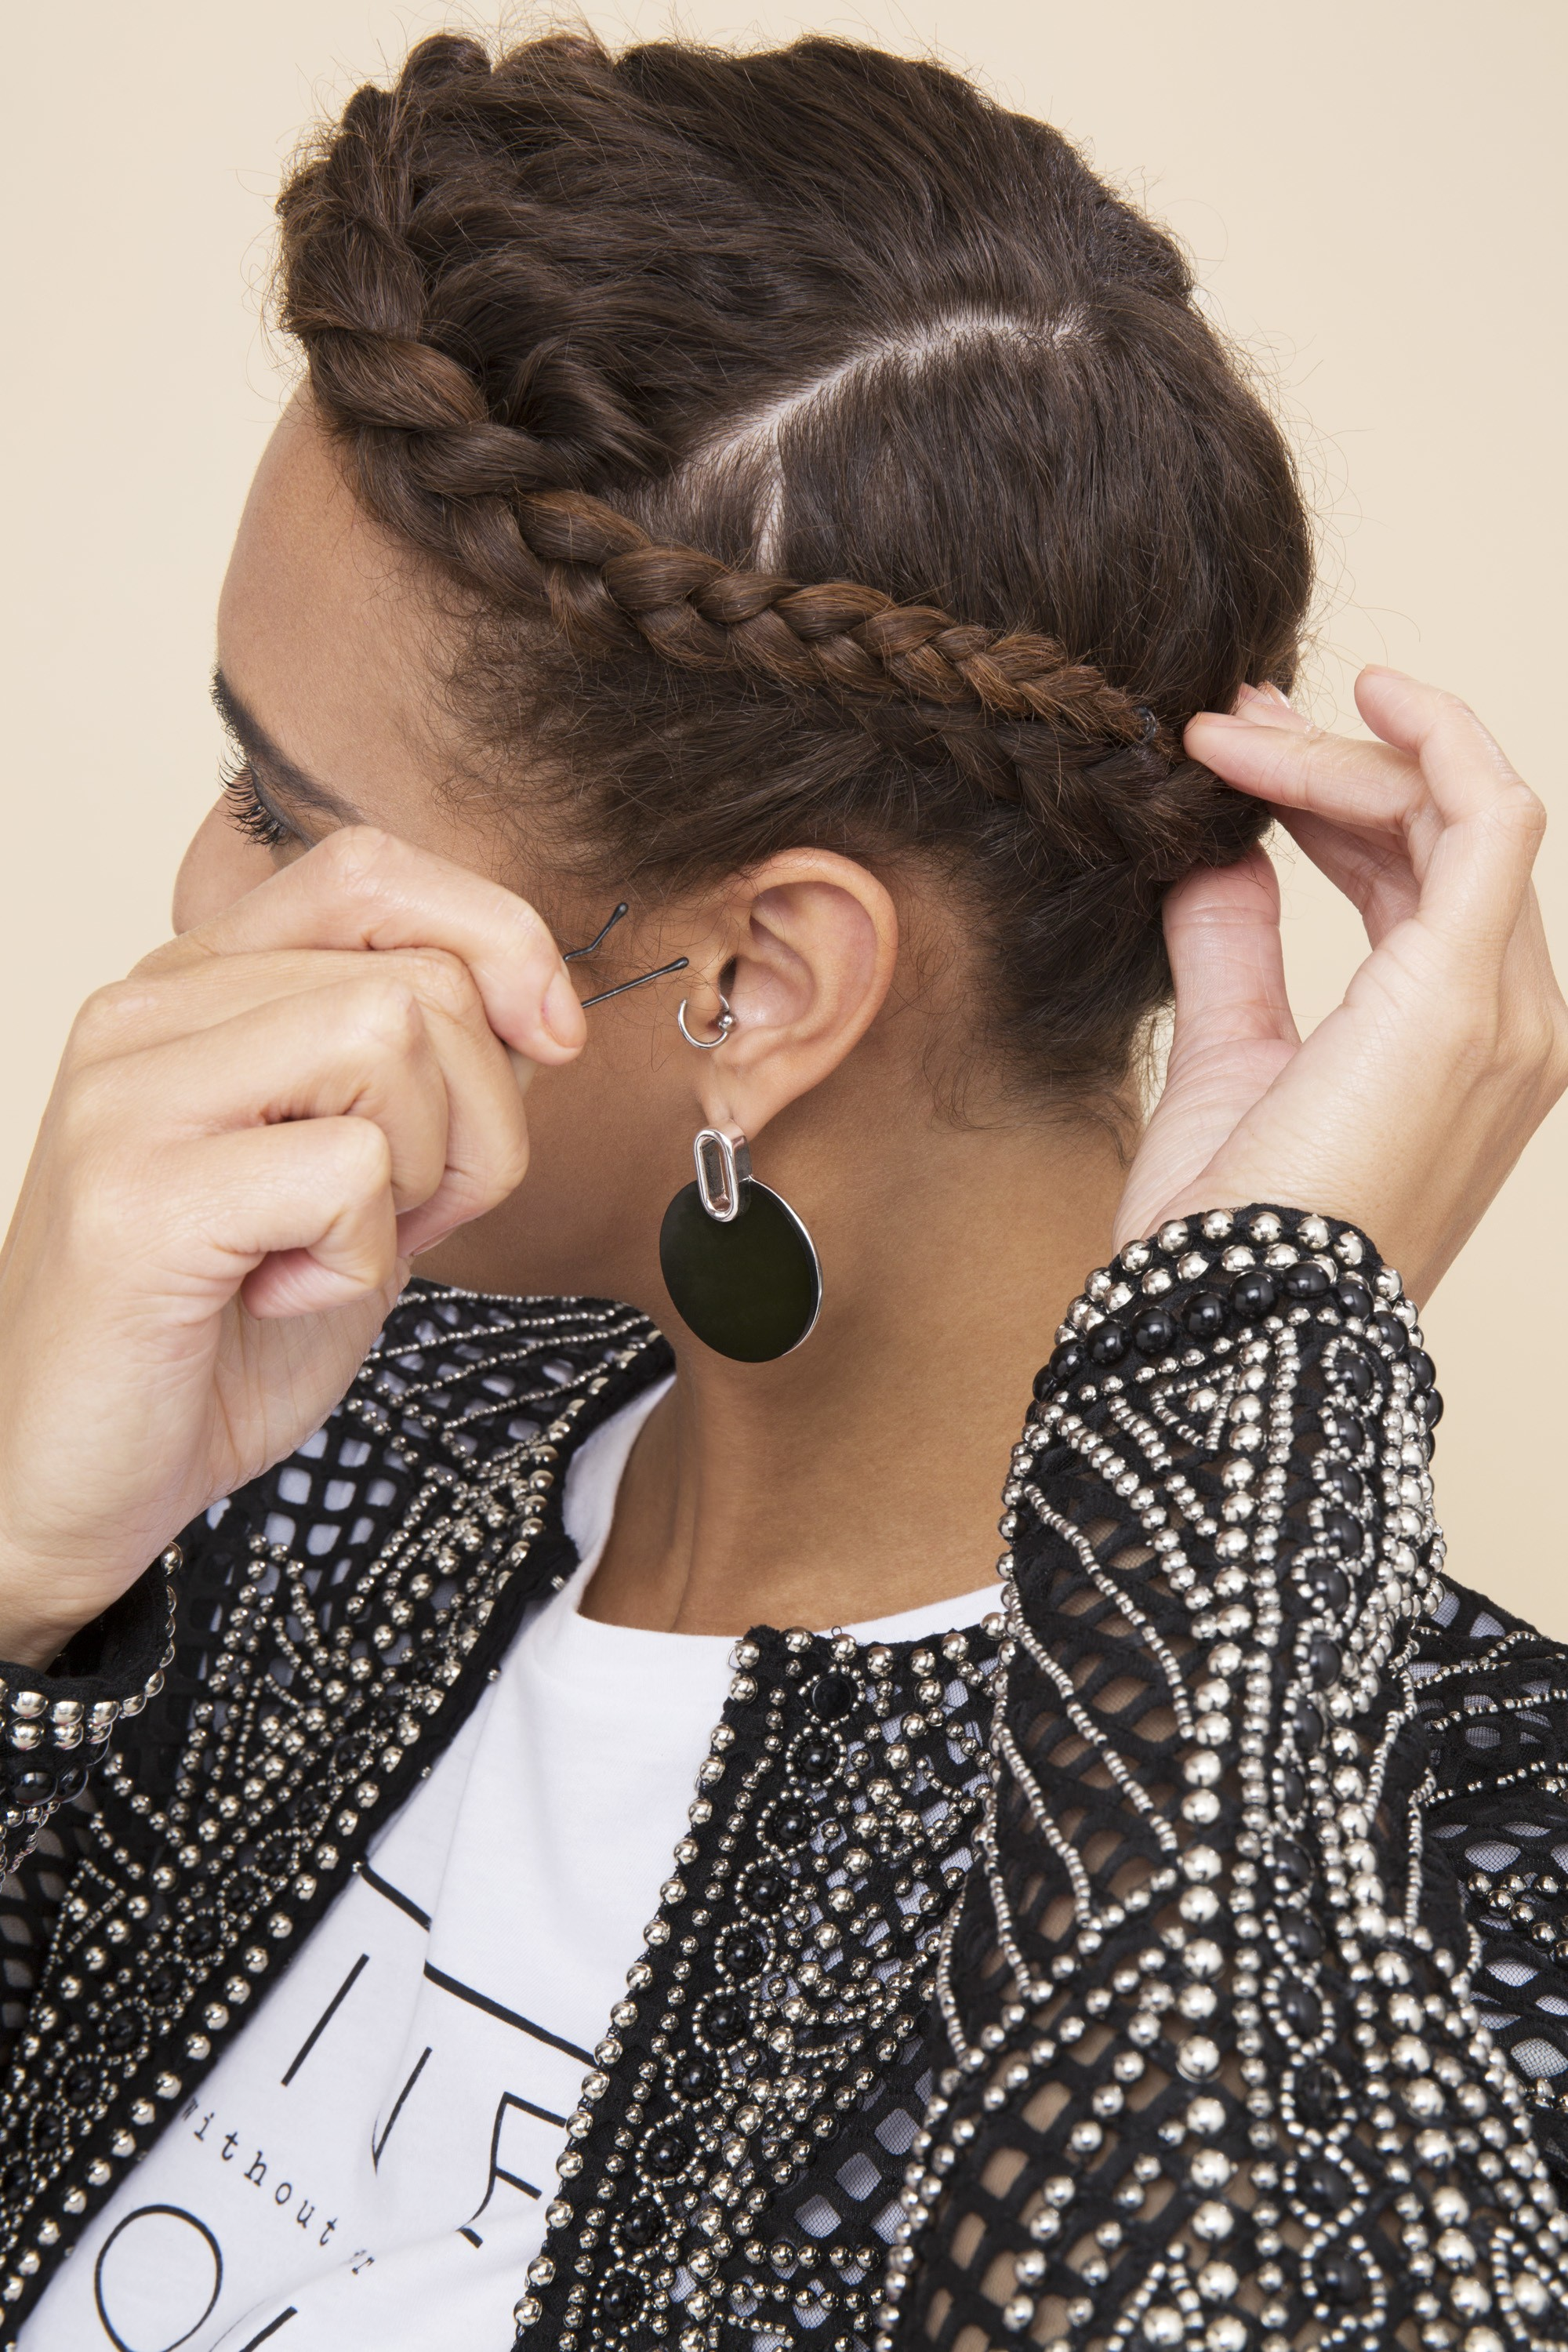 woman with afro hair in a halo braid using a kirby grip to secure the style